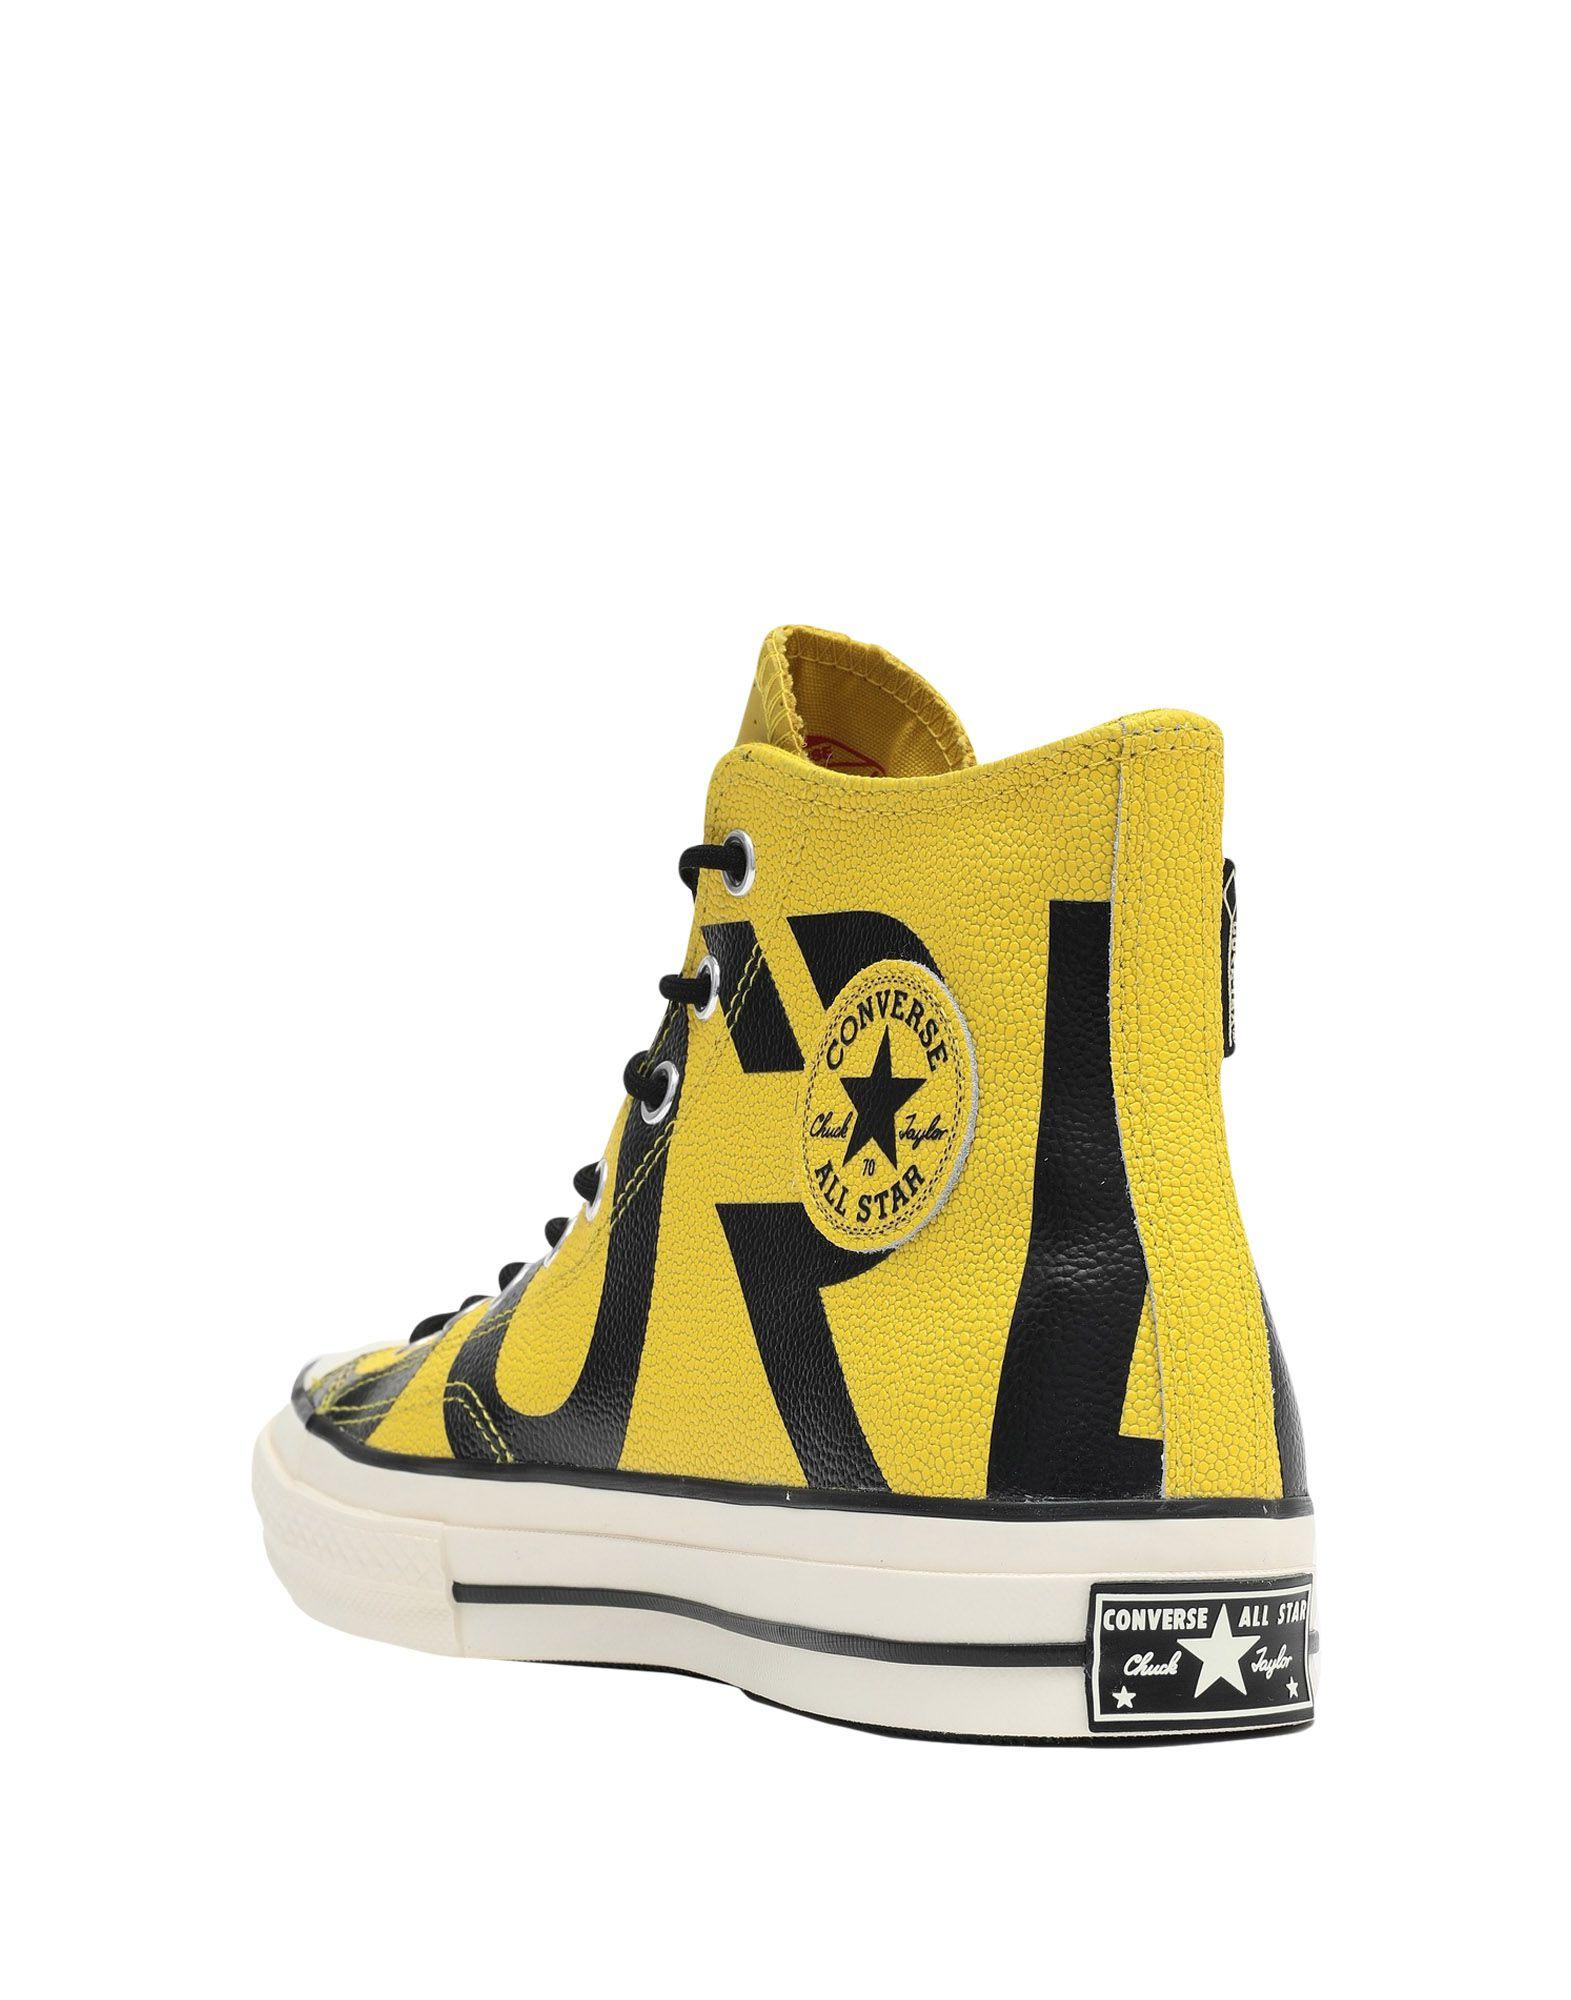 13cdeea3acc Converse High-tops   Sneakers in Yellow - Lyst